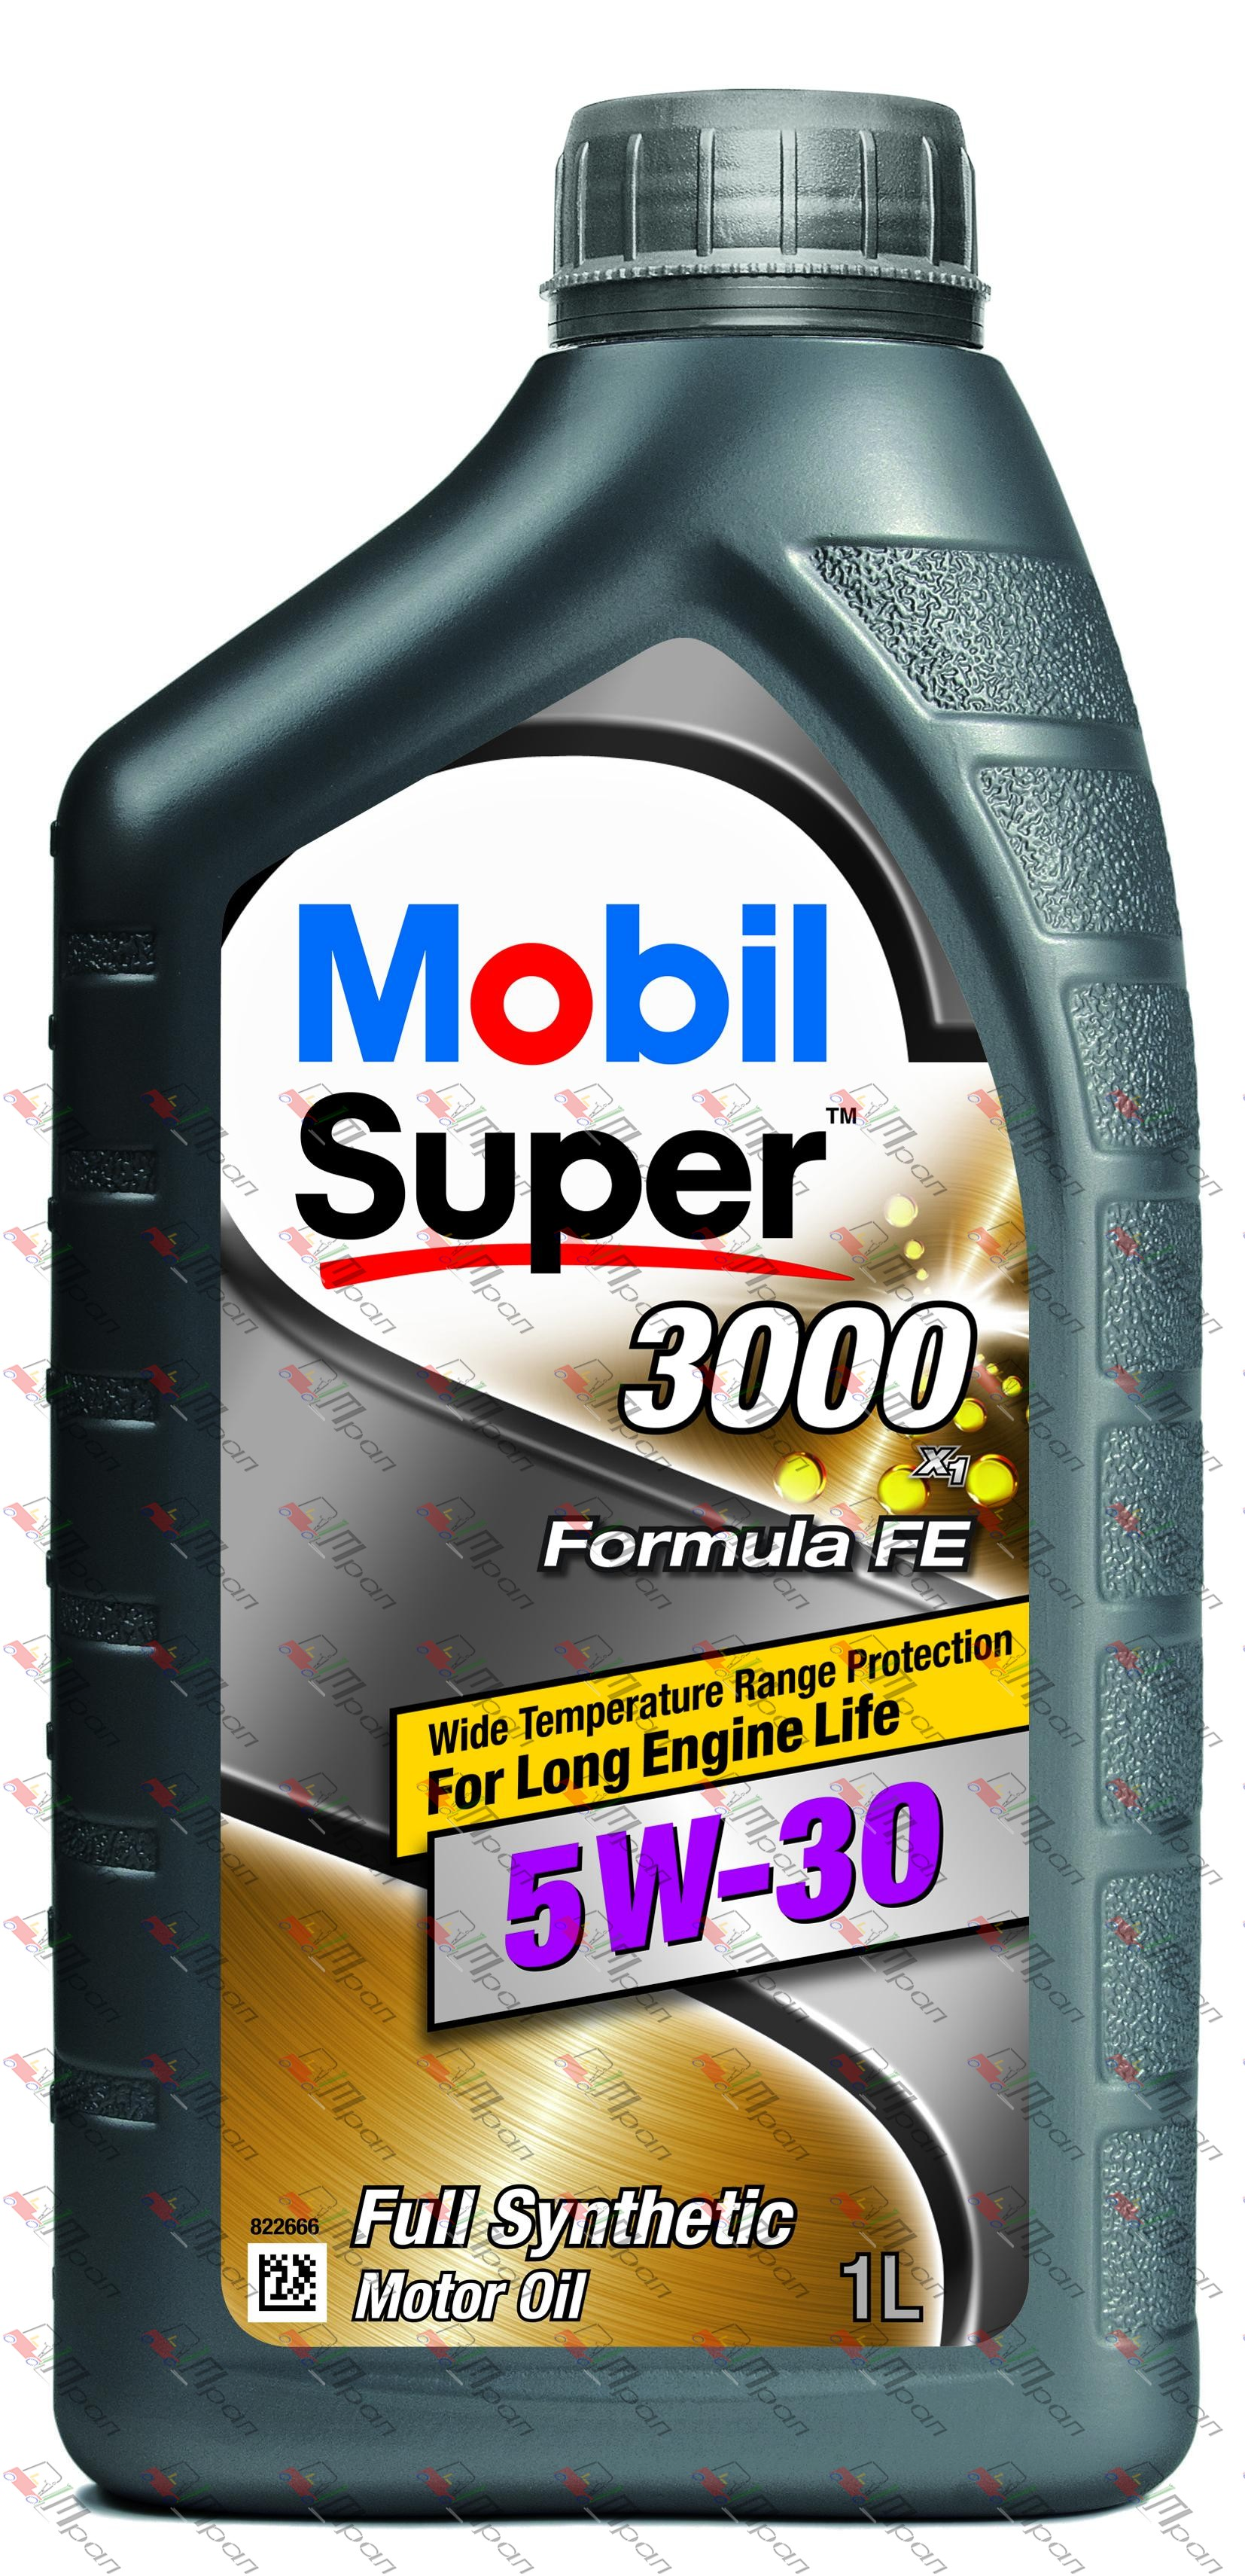 Mobil Масло моторное синтетич. Mobil Super 3000 FE 5w30 1л